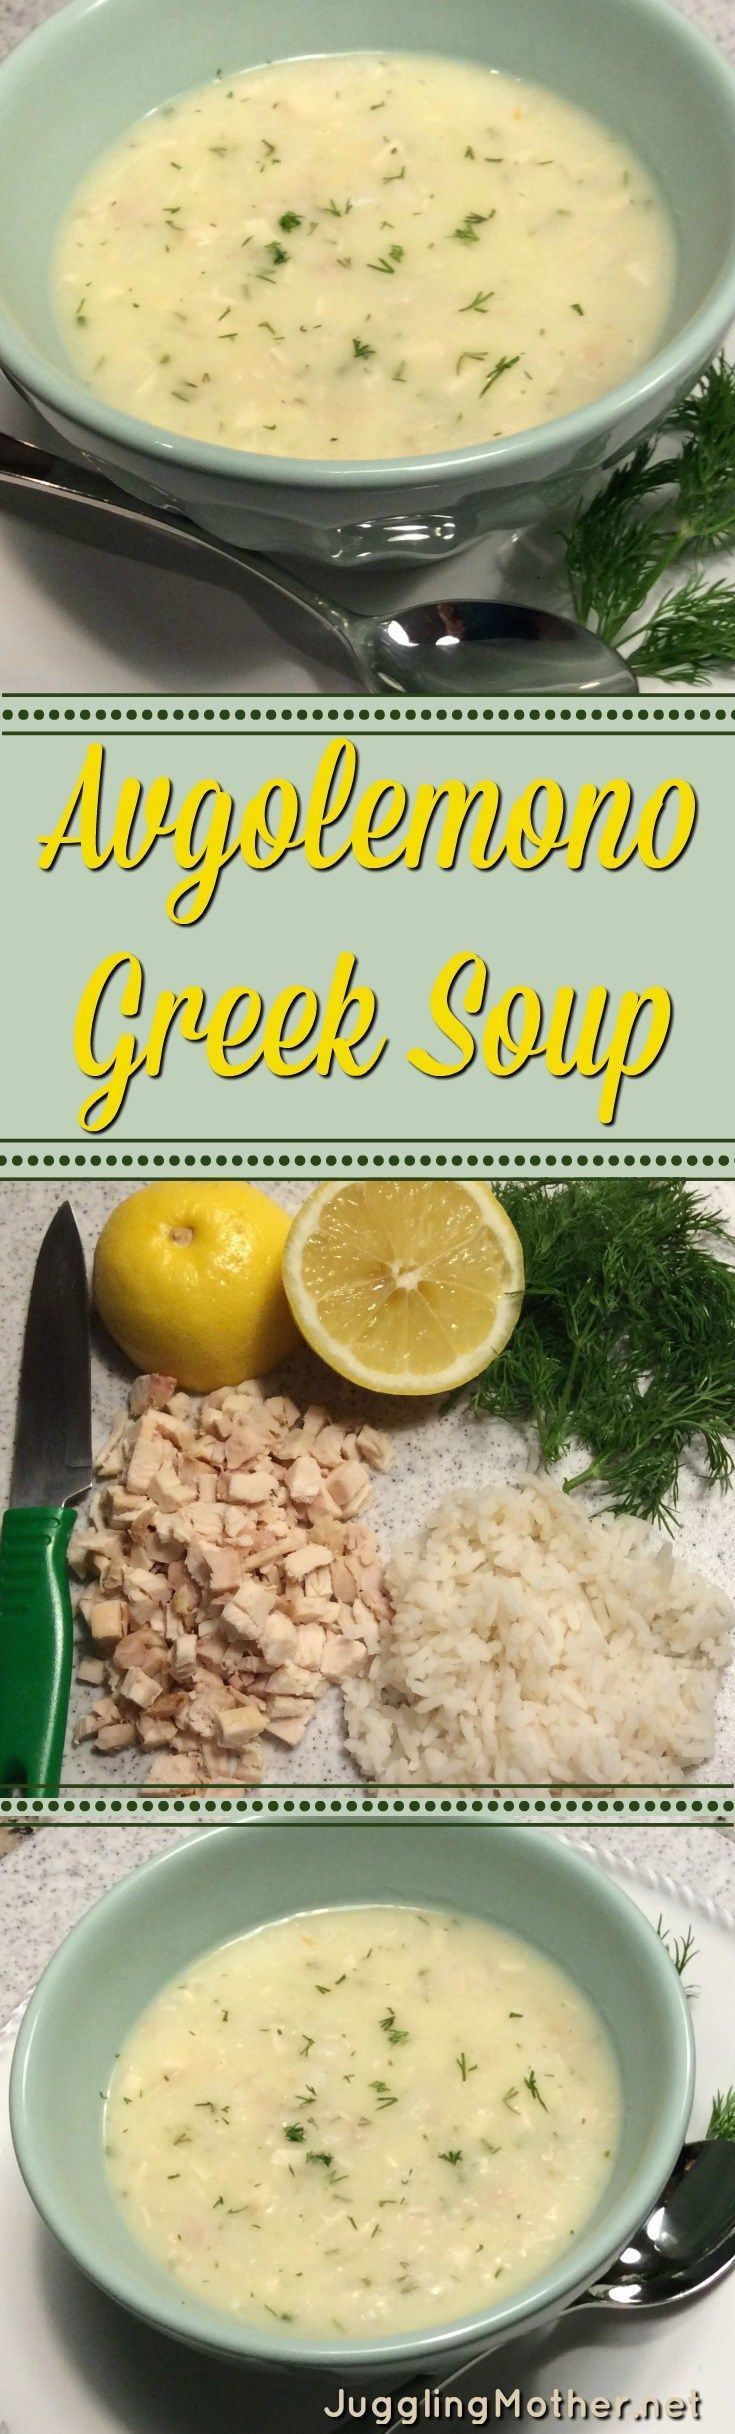 This creamy and delicious Greek soup, Avgolemono, get its name from egg-lemon. Eggs and rice help thicken the soup, lemon and dill give it a tangy, flavor.